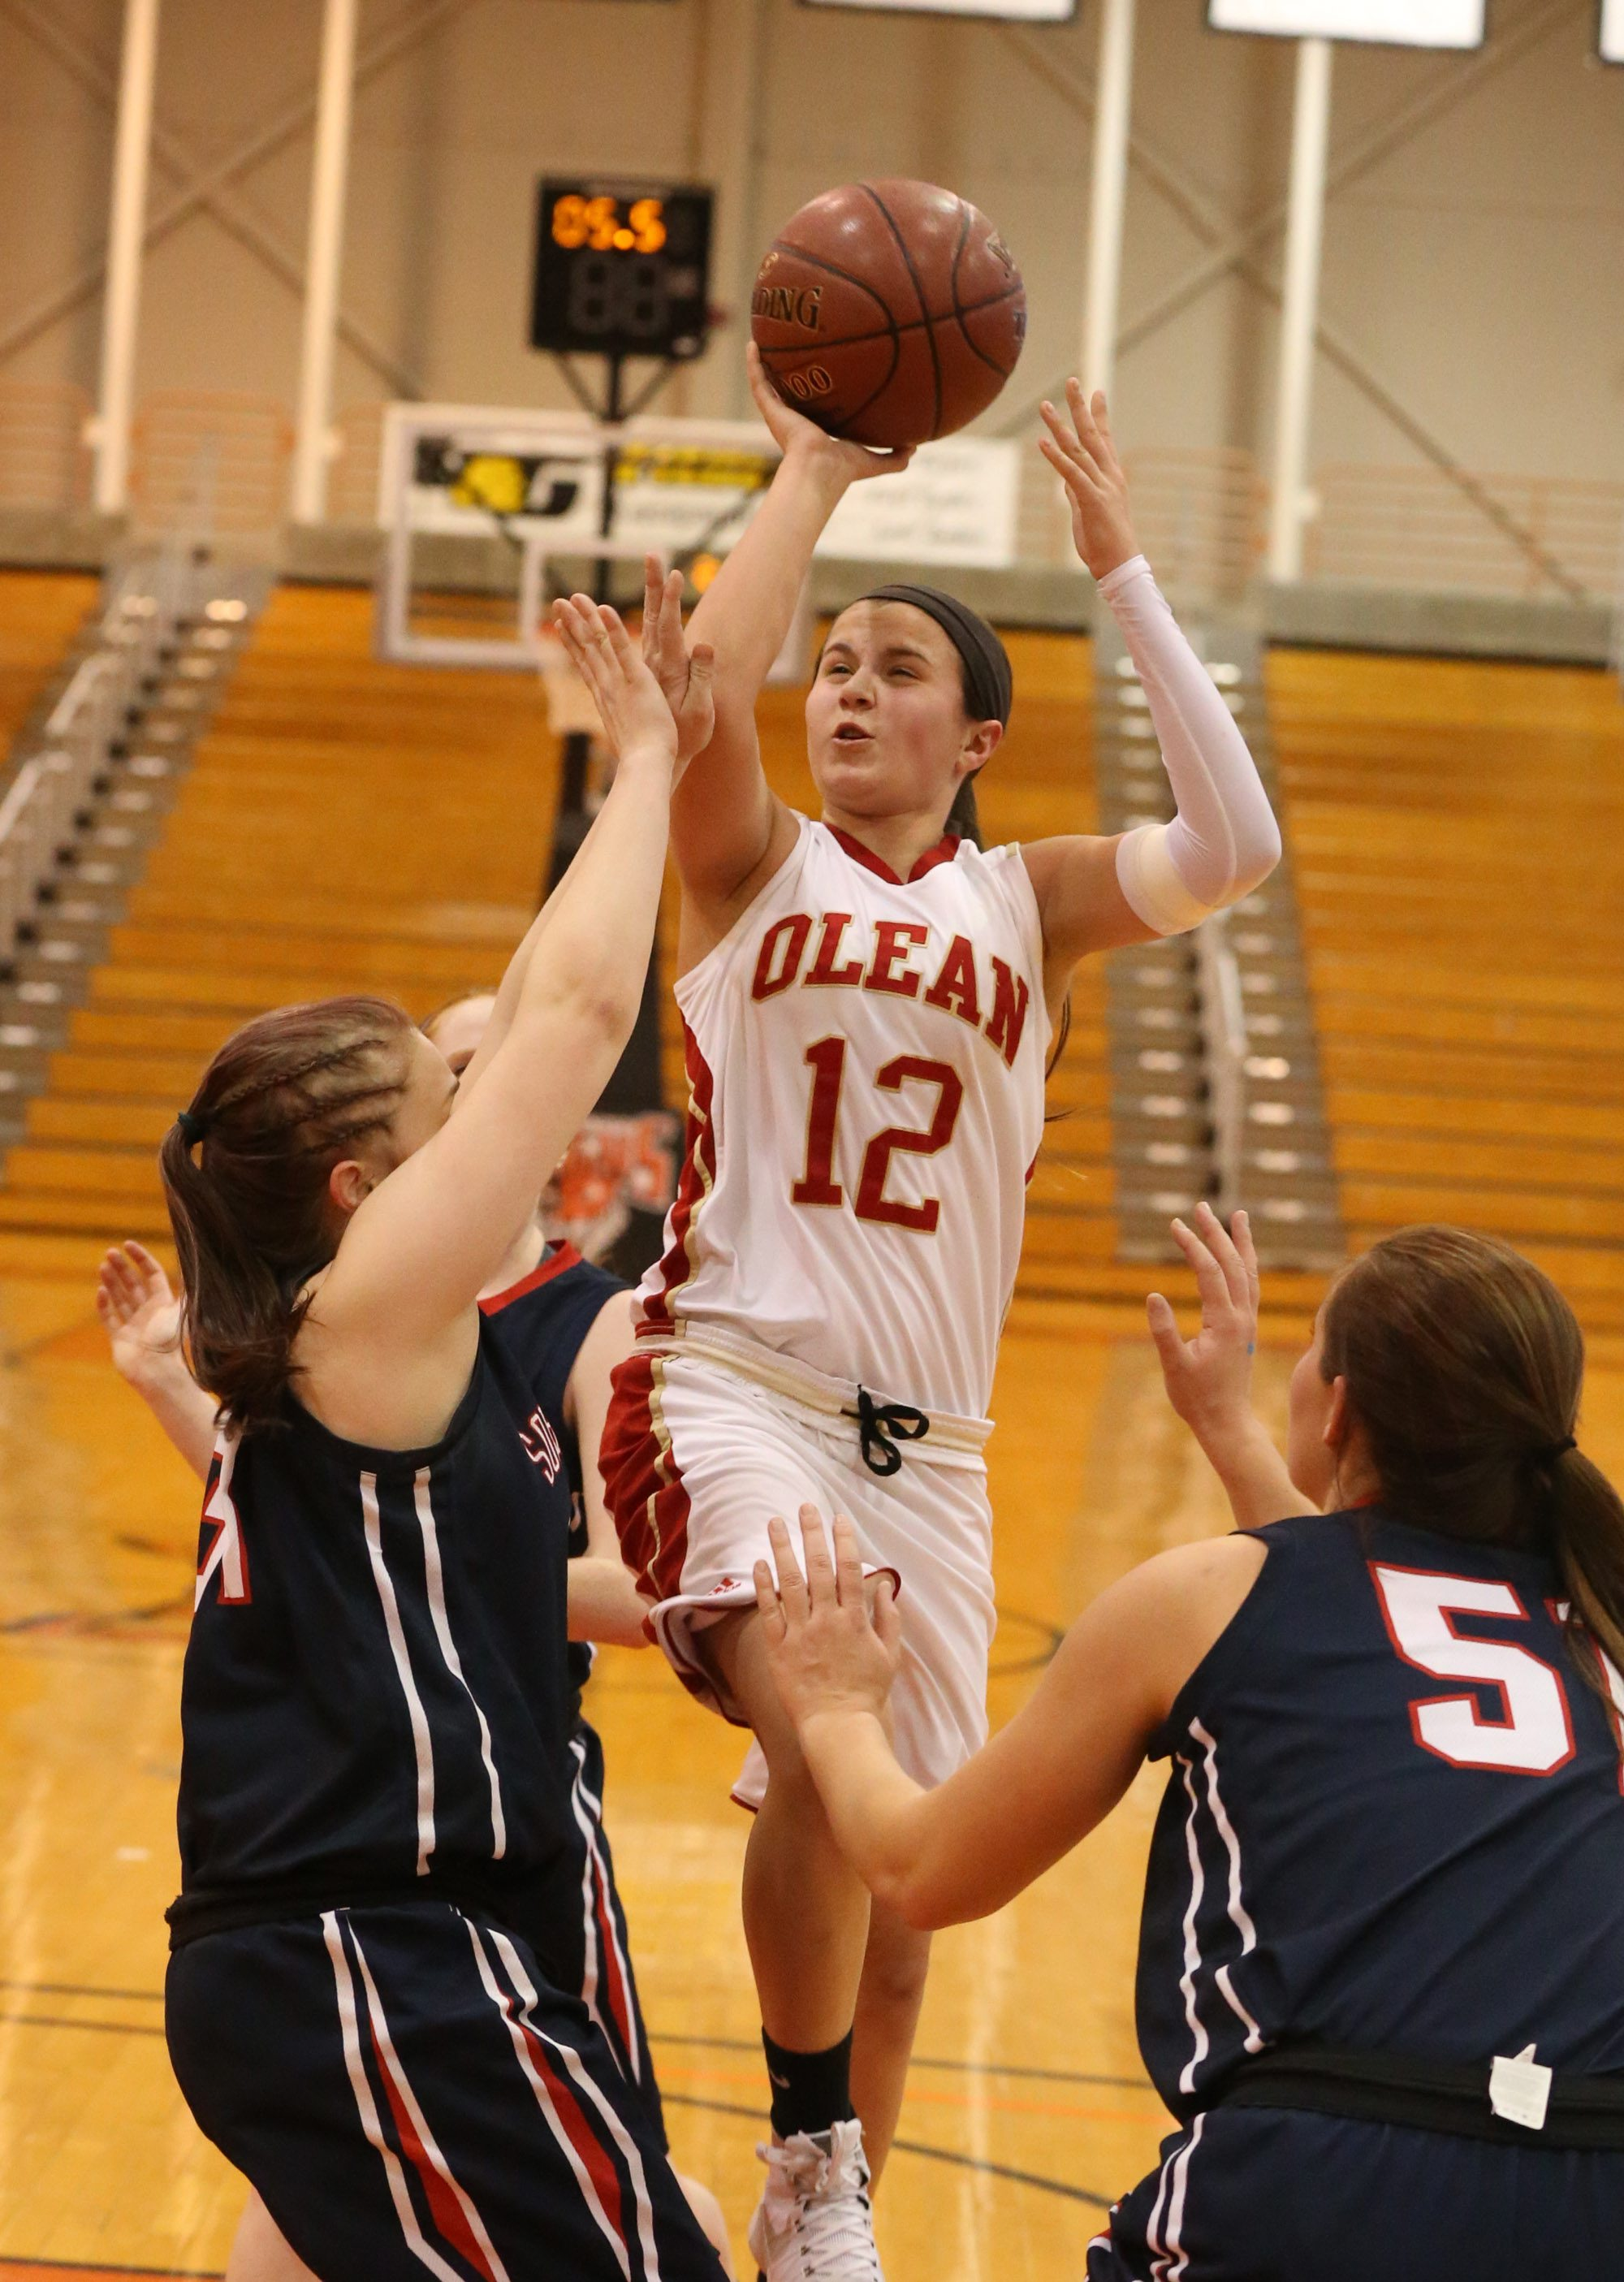 Sara Pfeiffer is the top returning player for an Olean team that has moved up to Class A. (James P. McCoy/Buffalo News)